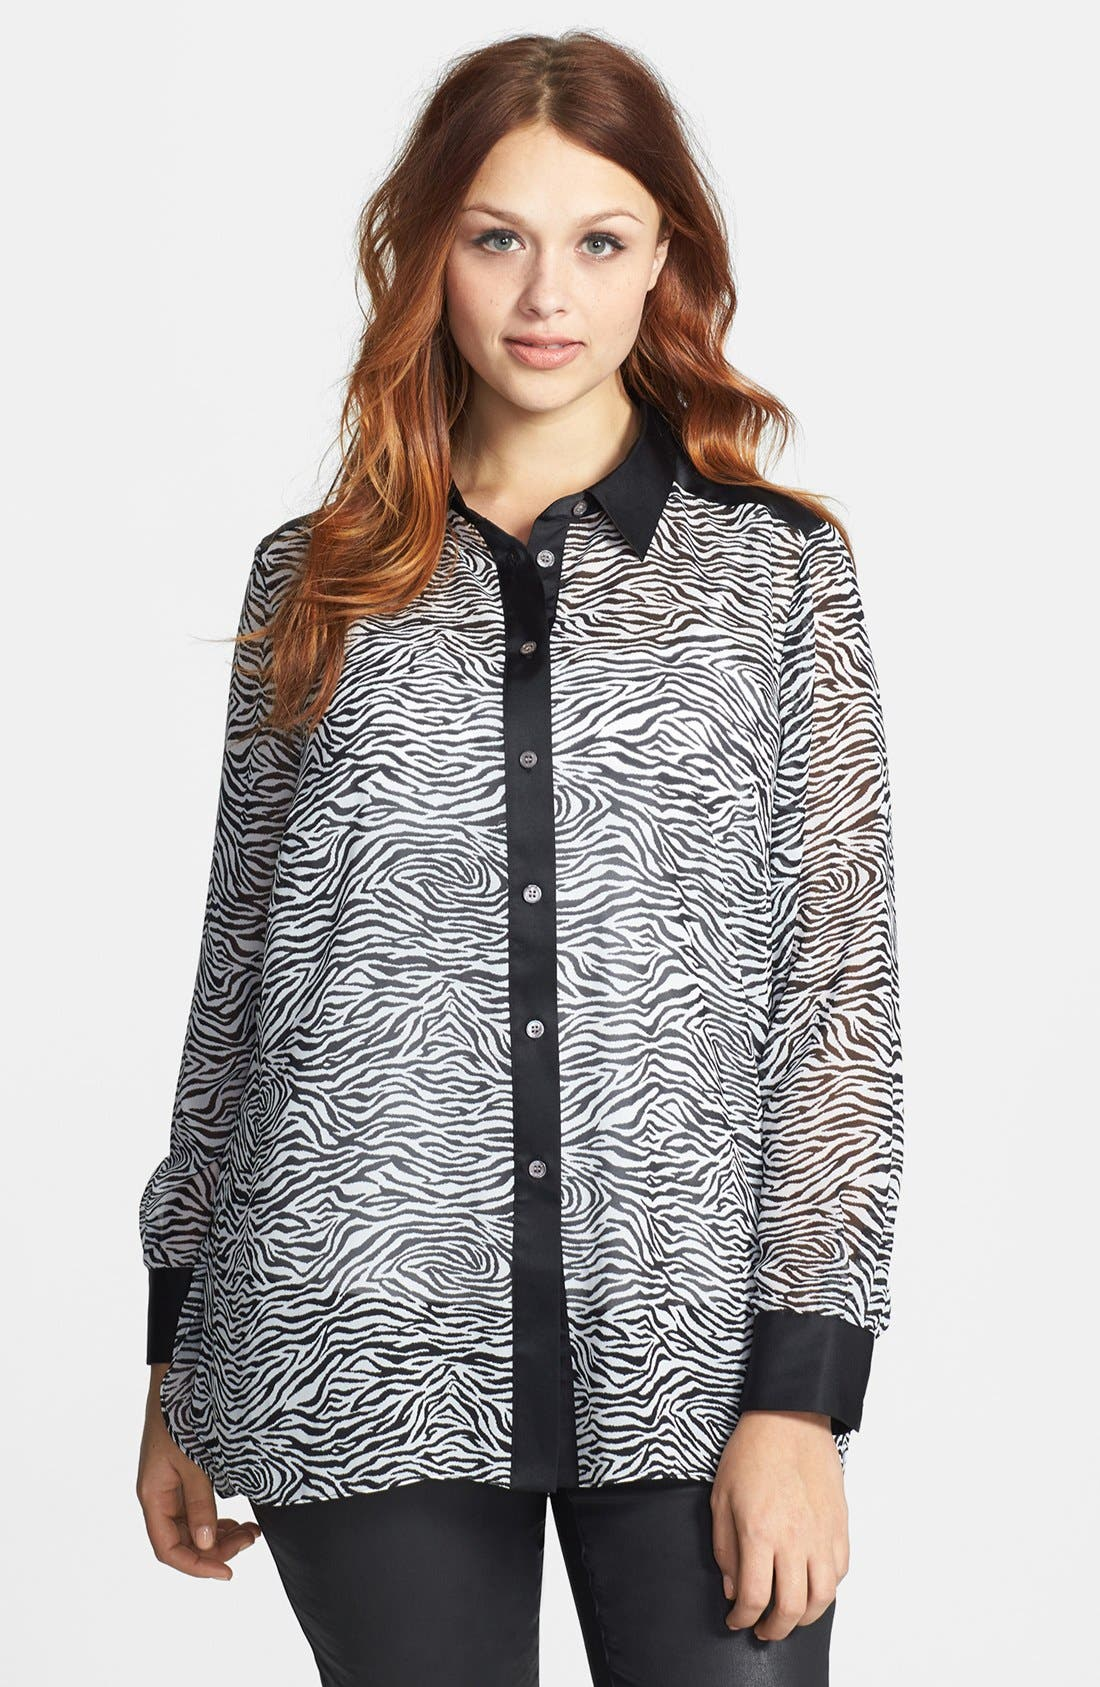 Alternate Image 1 Selected - Vince Camuto Zebra Print Mixed Media Blouse (Plus Size)